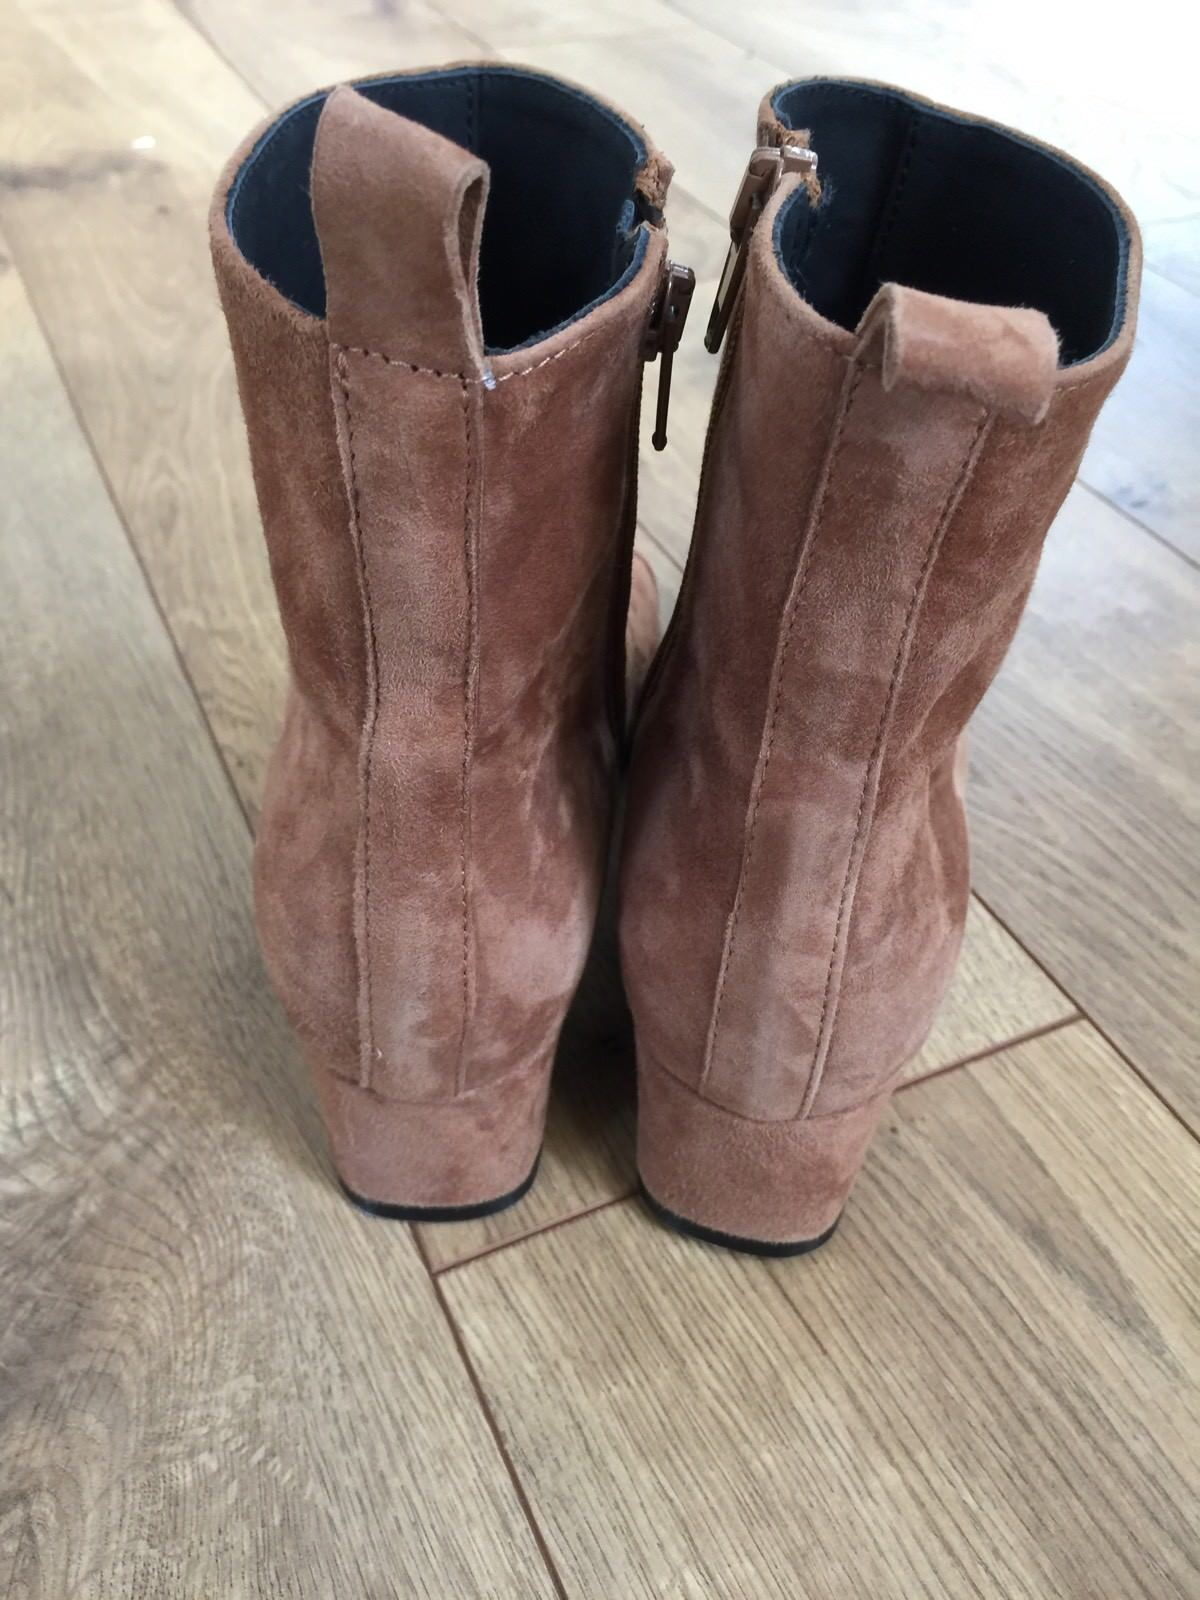 NEW CAREL FOR JCREW ESTIME SUEDE SUEDE SUEDE BOOTS SIZE 36 BEIGE CAMEL  420 F7117 VERY RARE a61f55